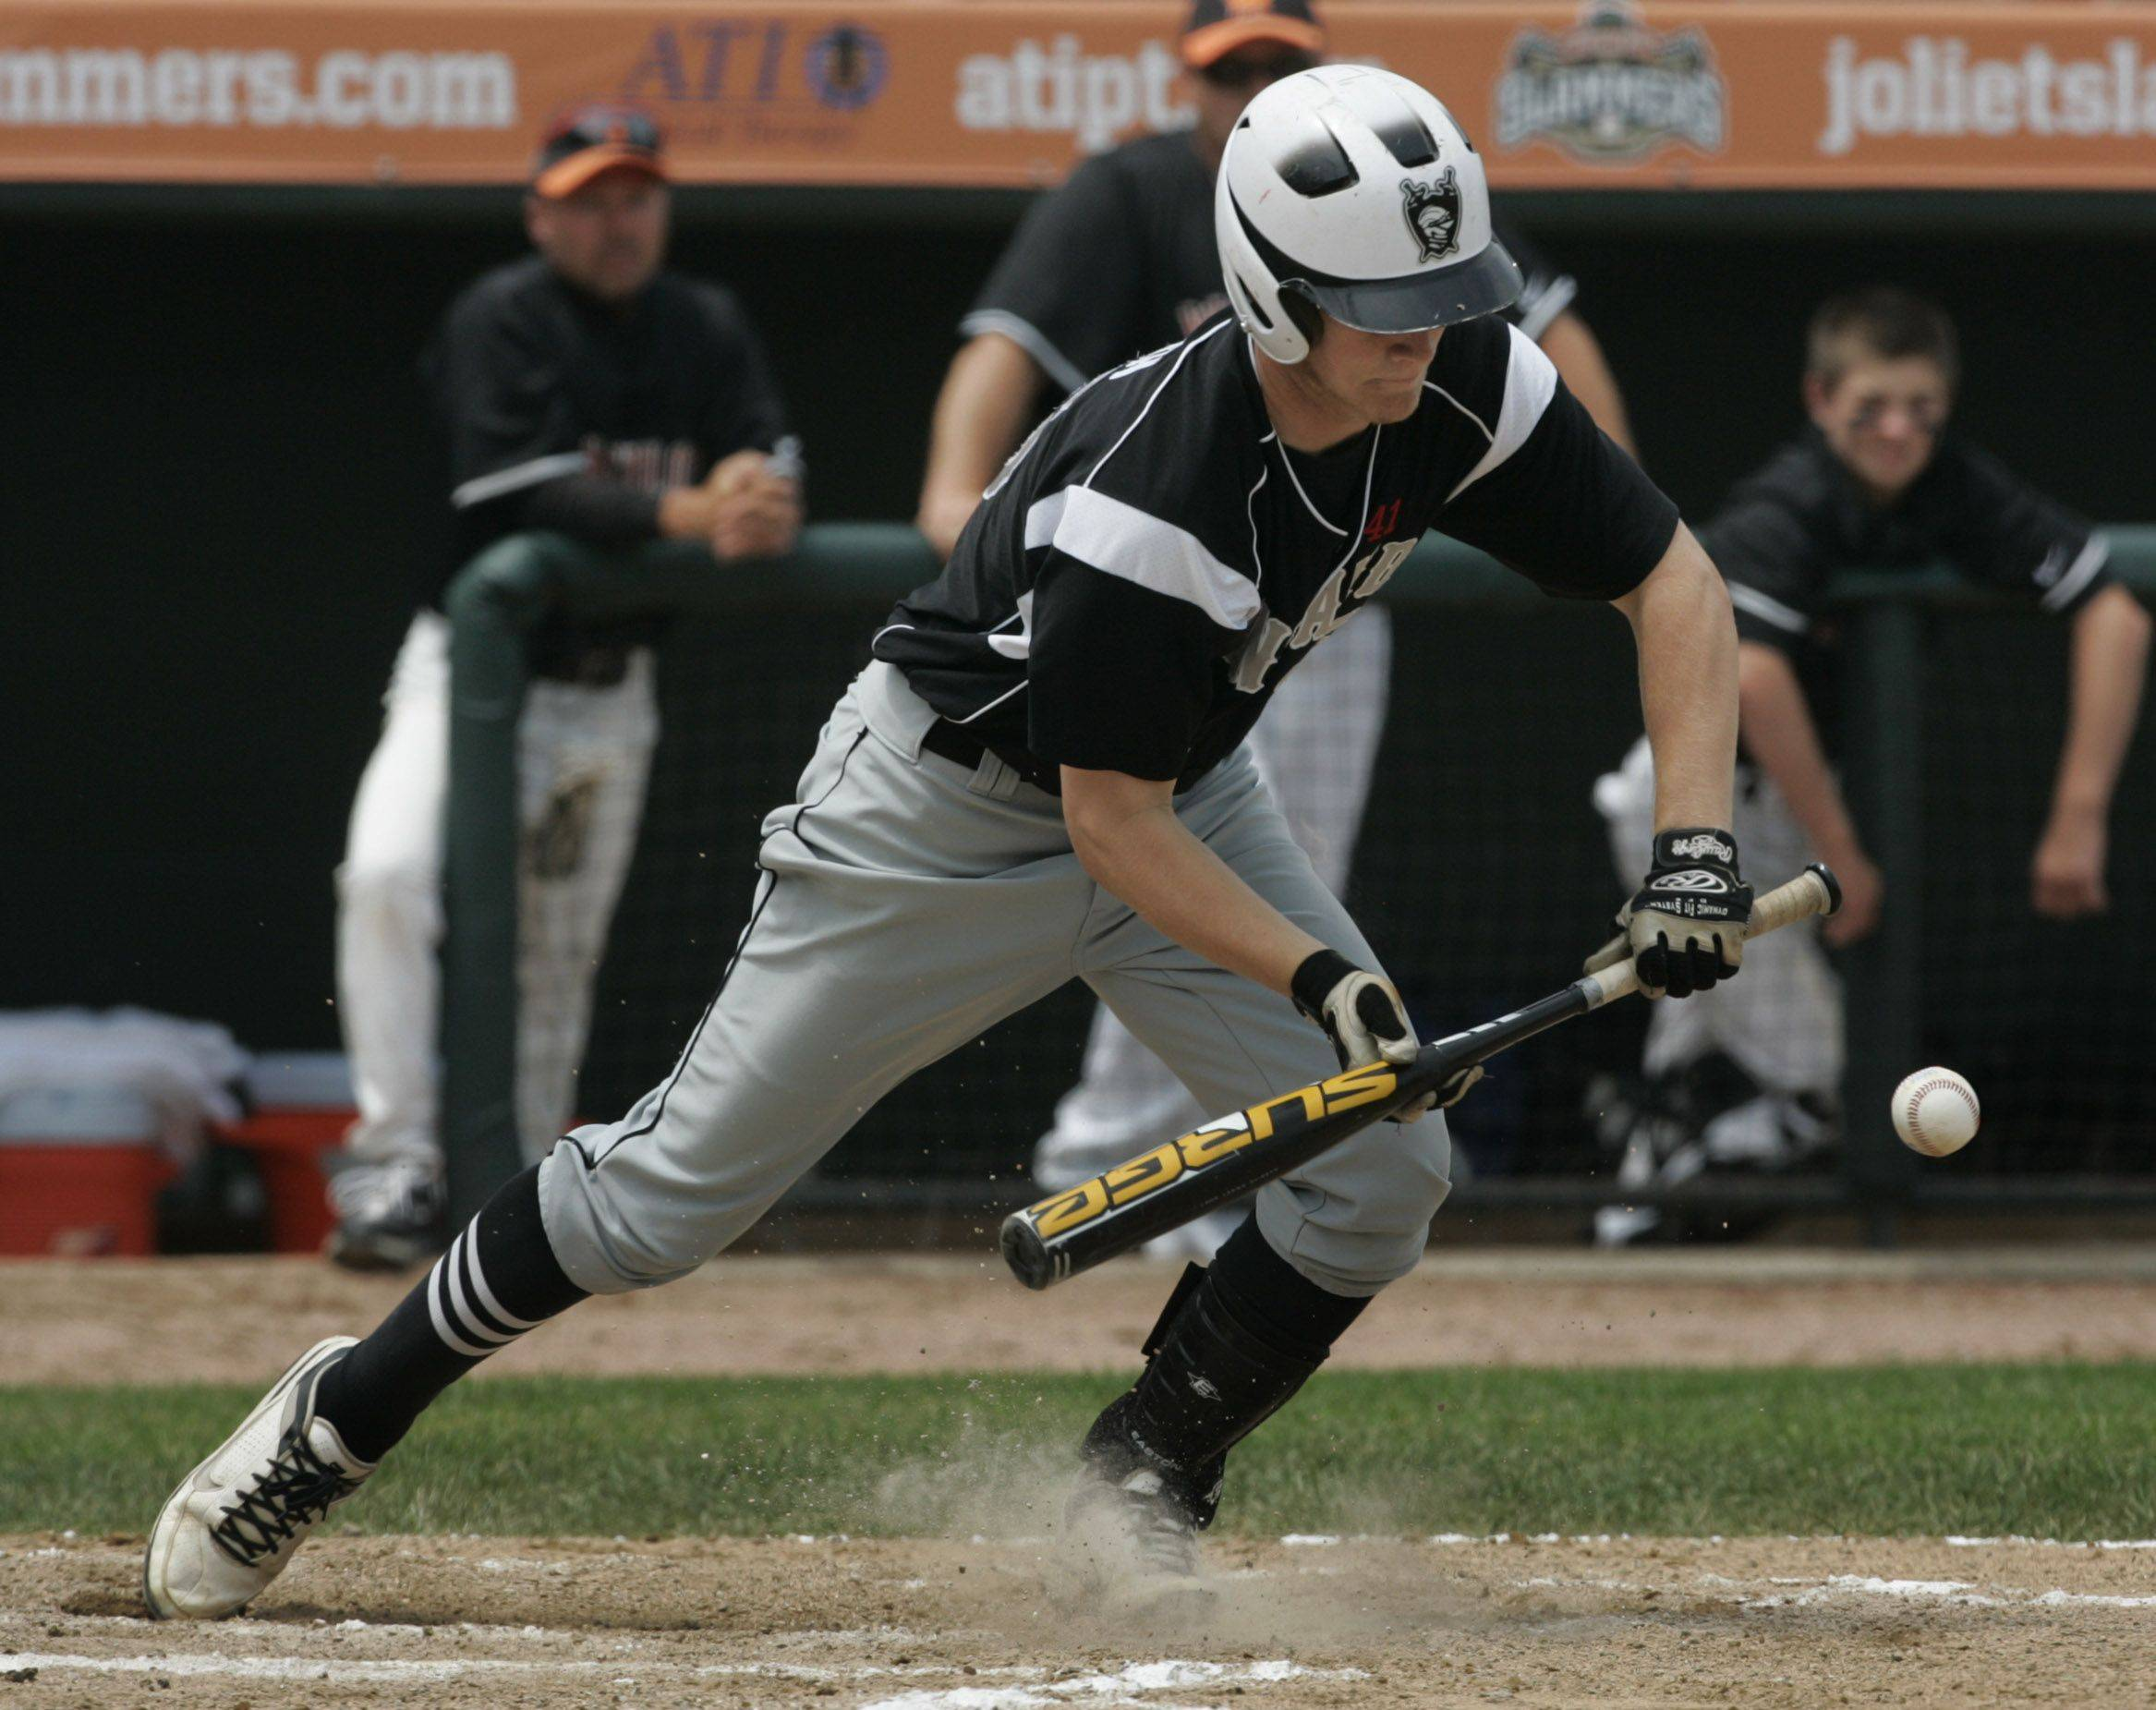 Kaneland batter Drew French attempts a bunt.